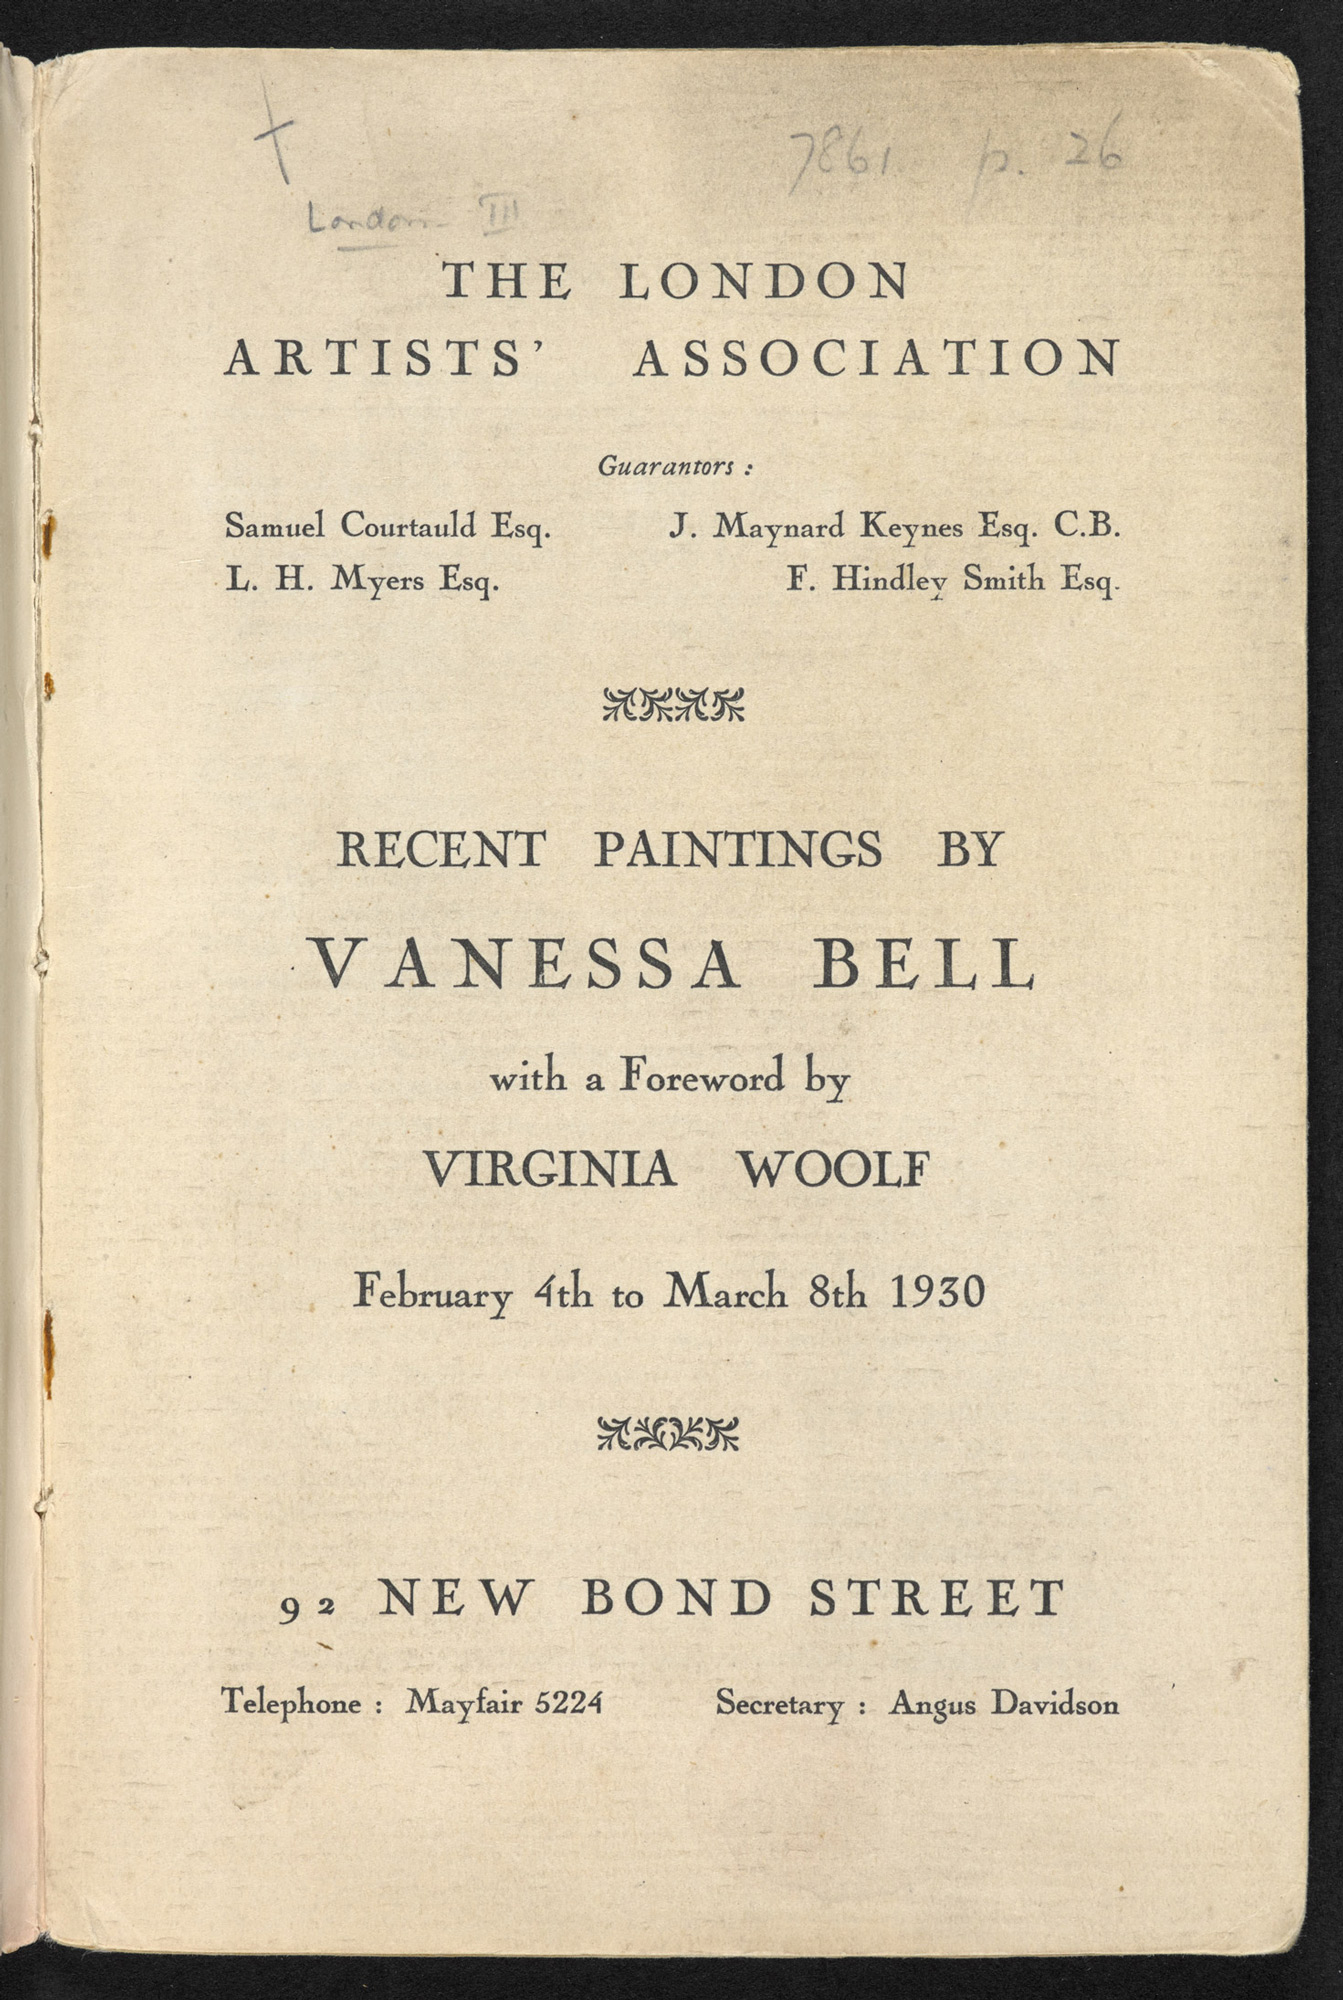 Vanessa Bell exhibition catalogue with an essay by Virginia Woolf